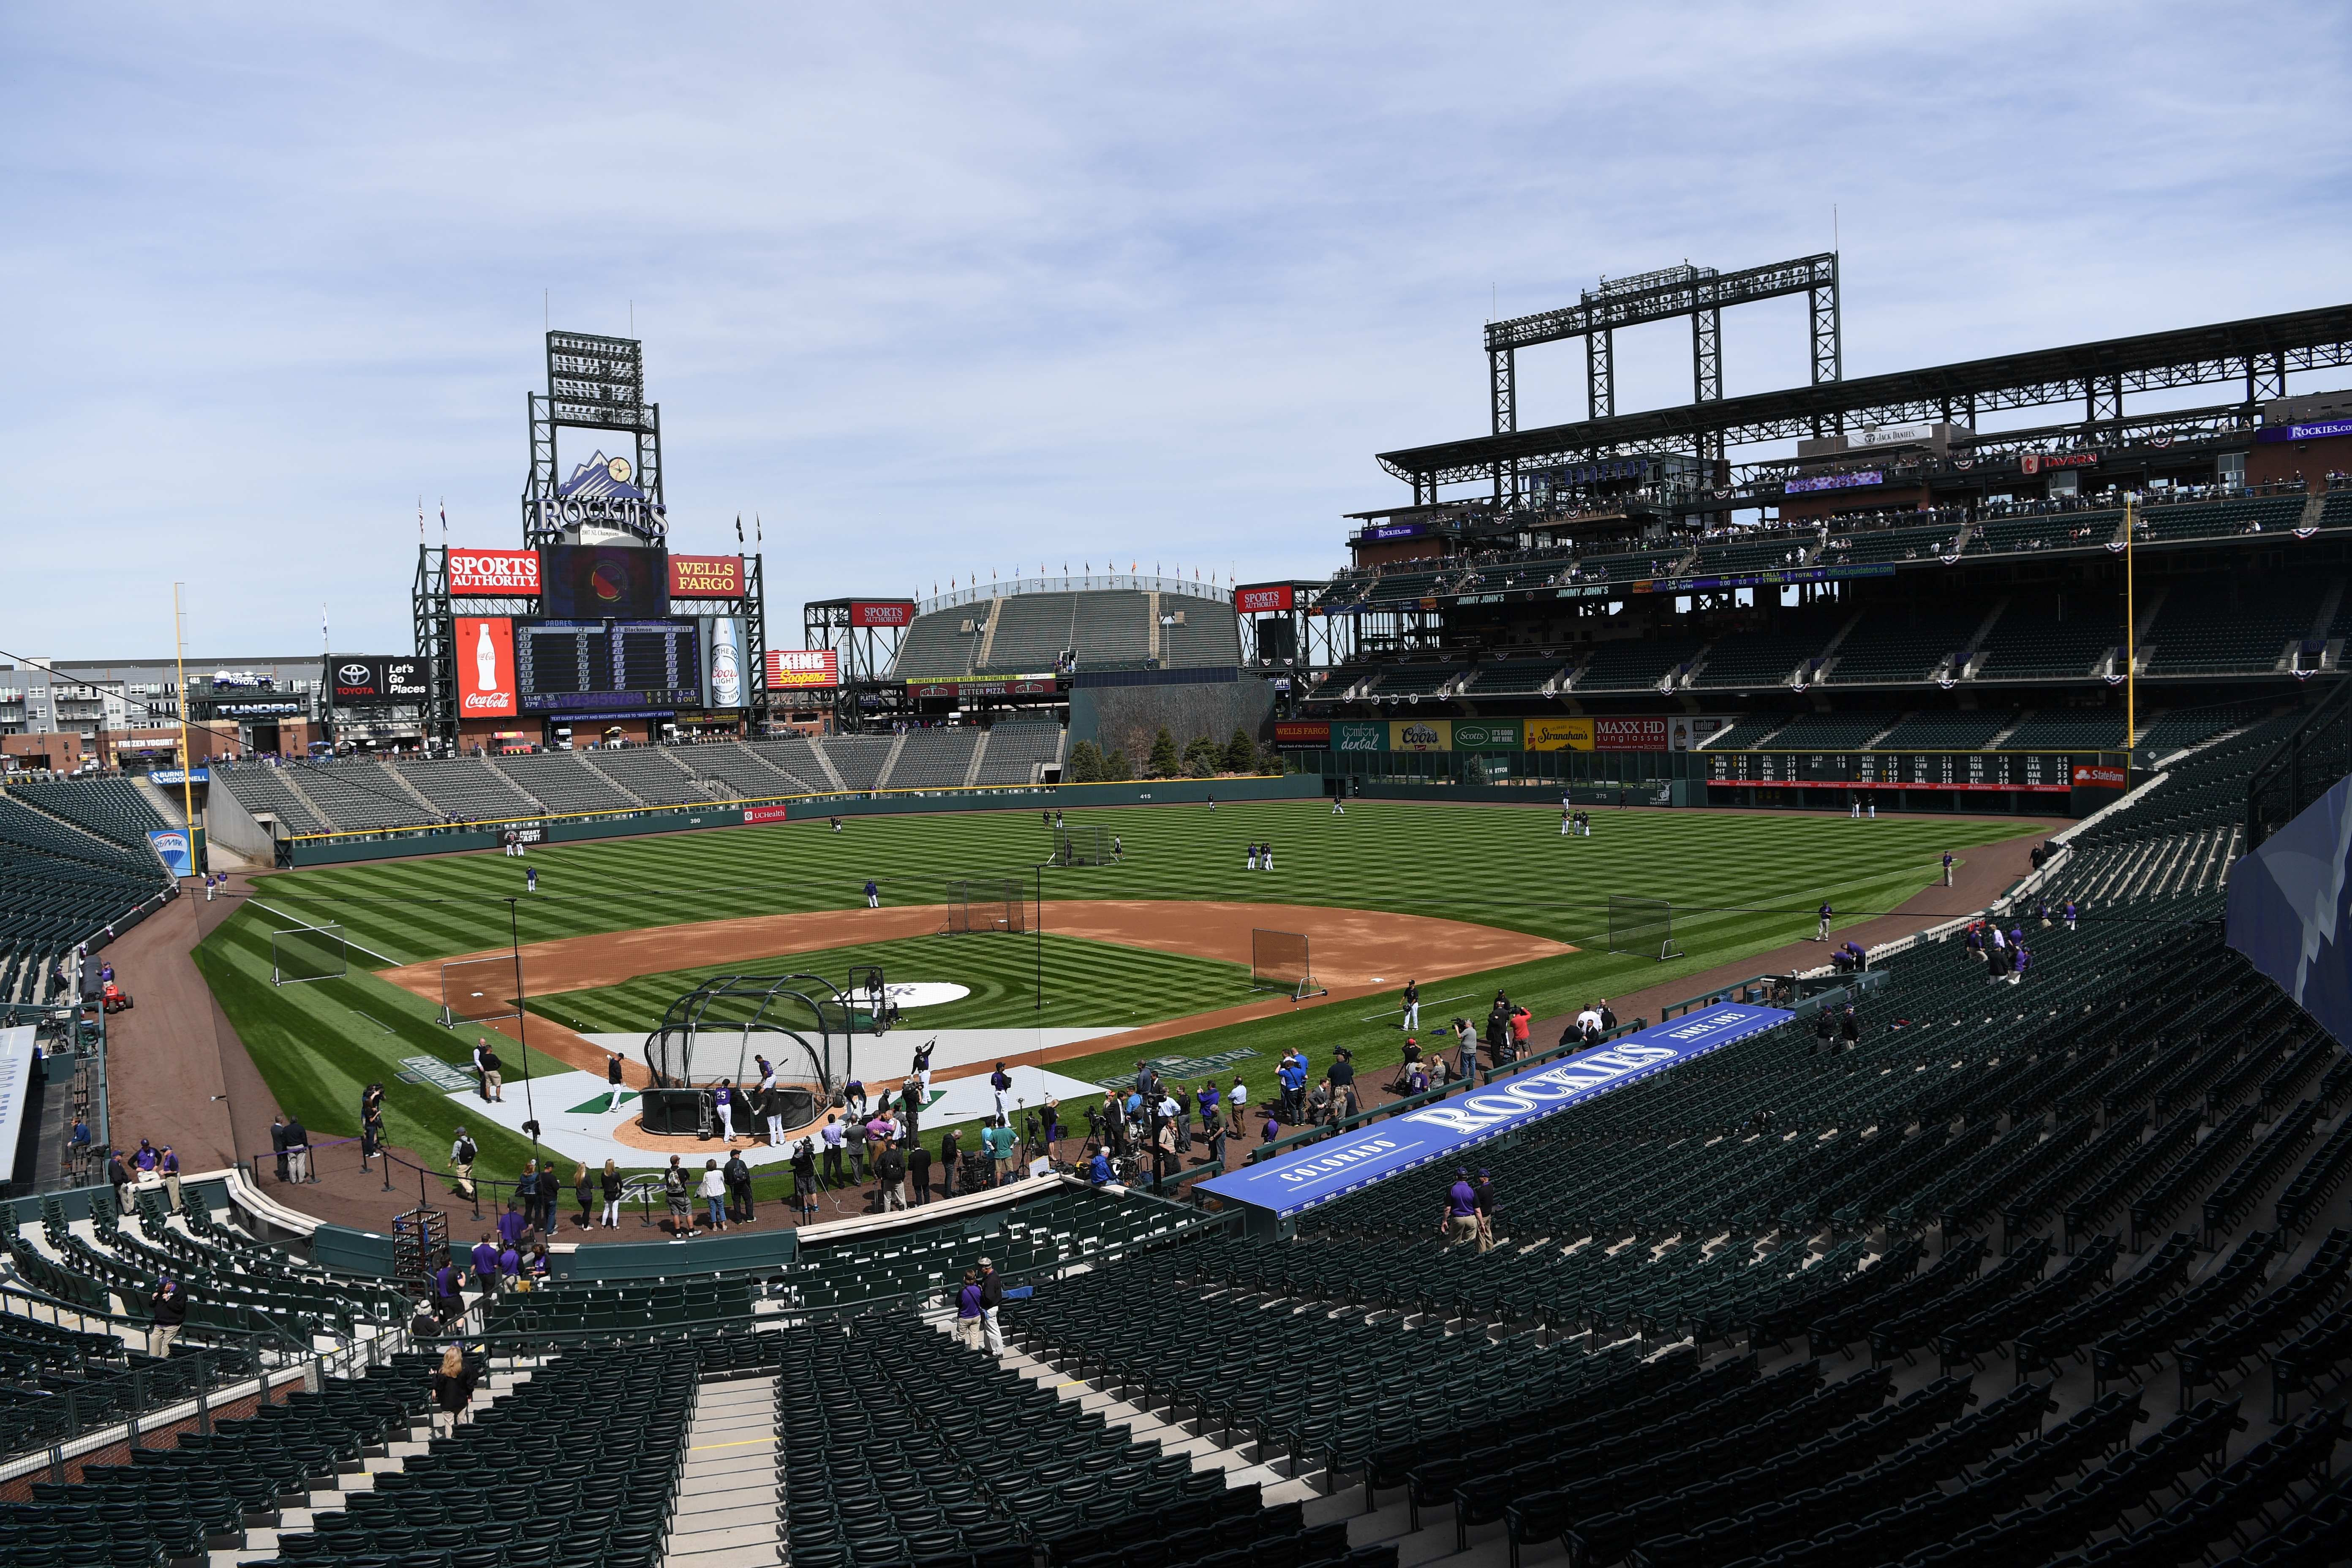 Rockies Sign Lease Deal To Keep Coors Field Home For Next